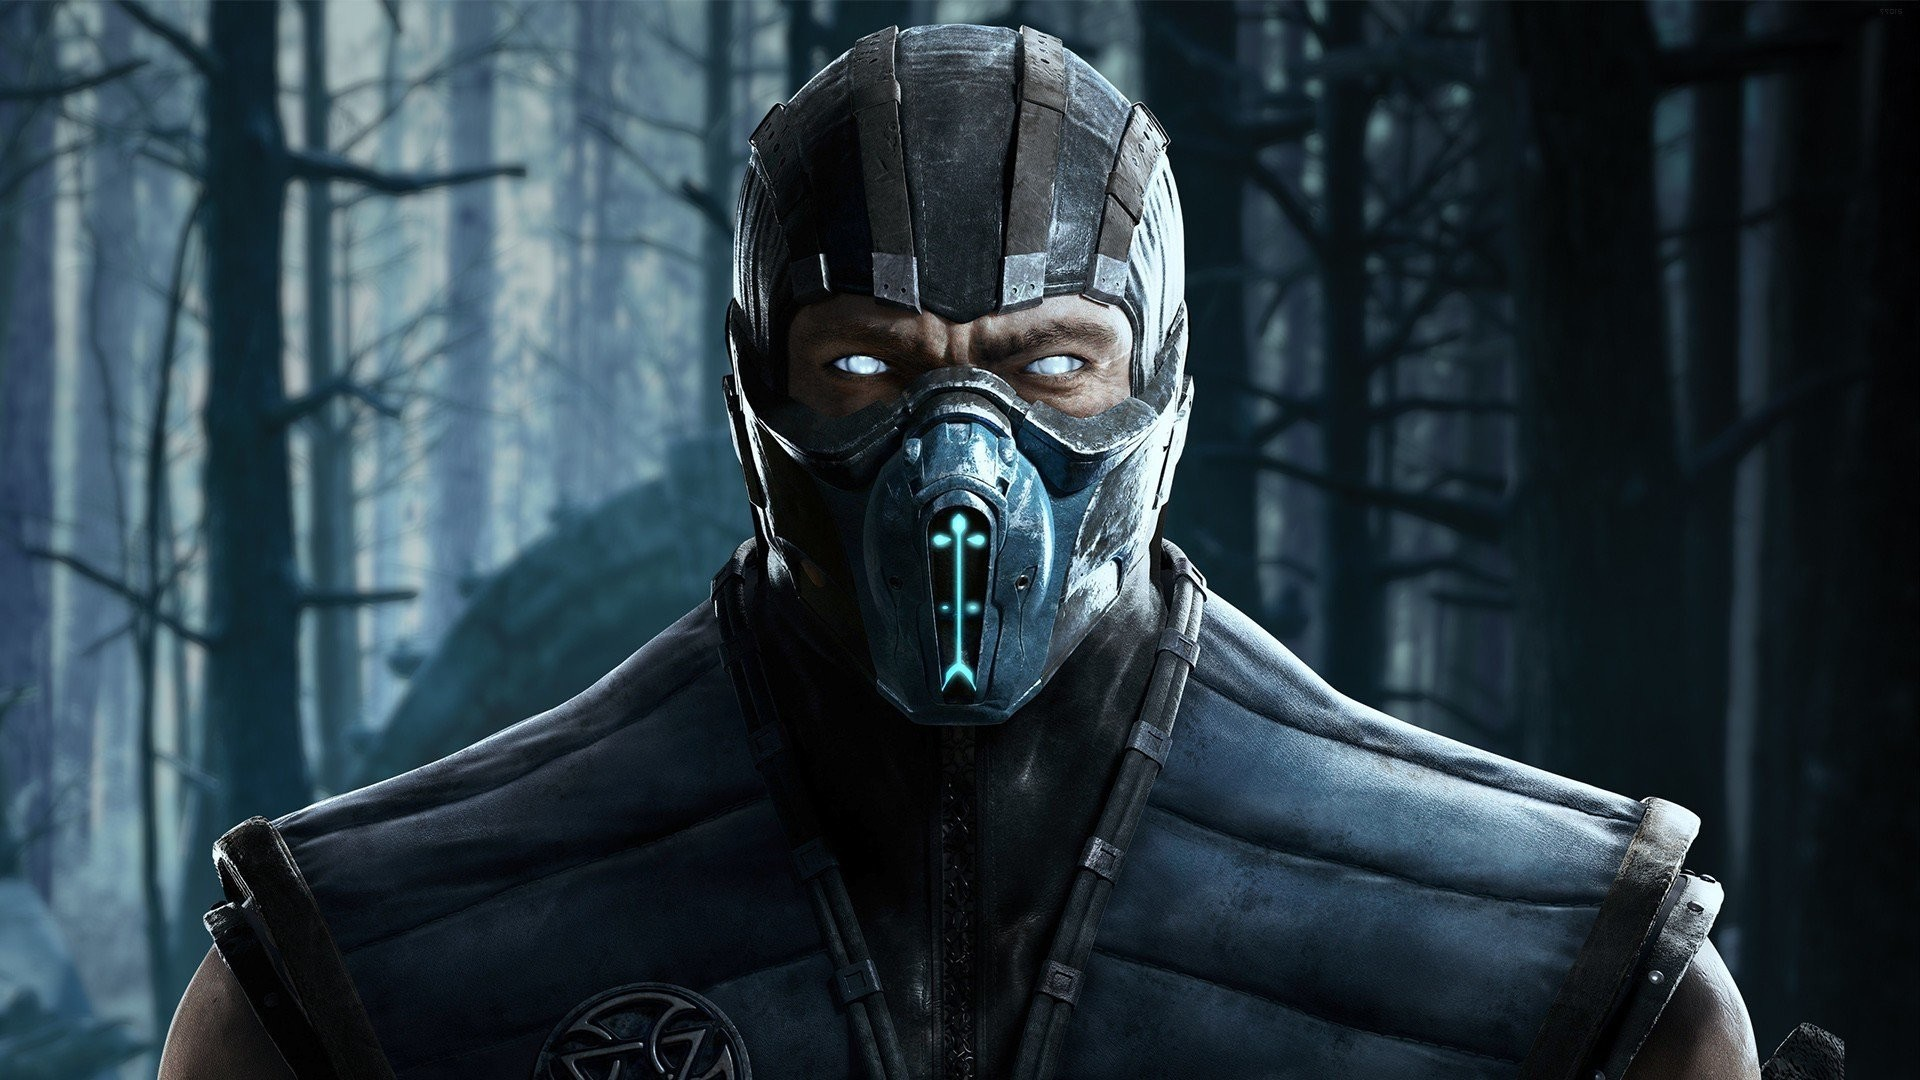 Mortal Kombat Scorpion Vs Sub Zero Wallpapers 73 Background Pictures